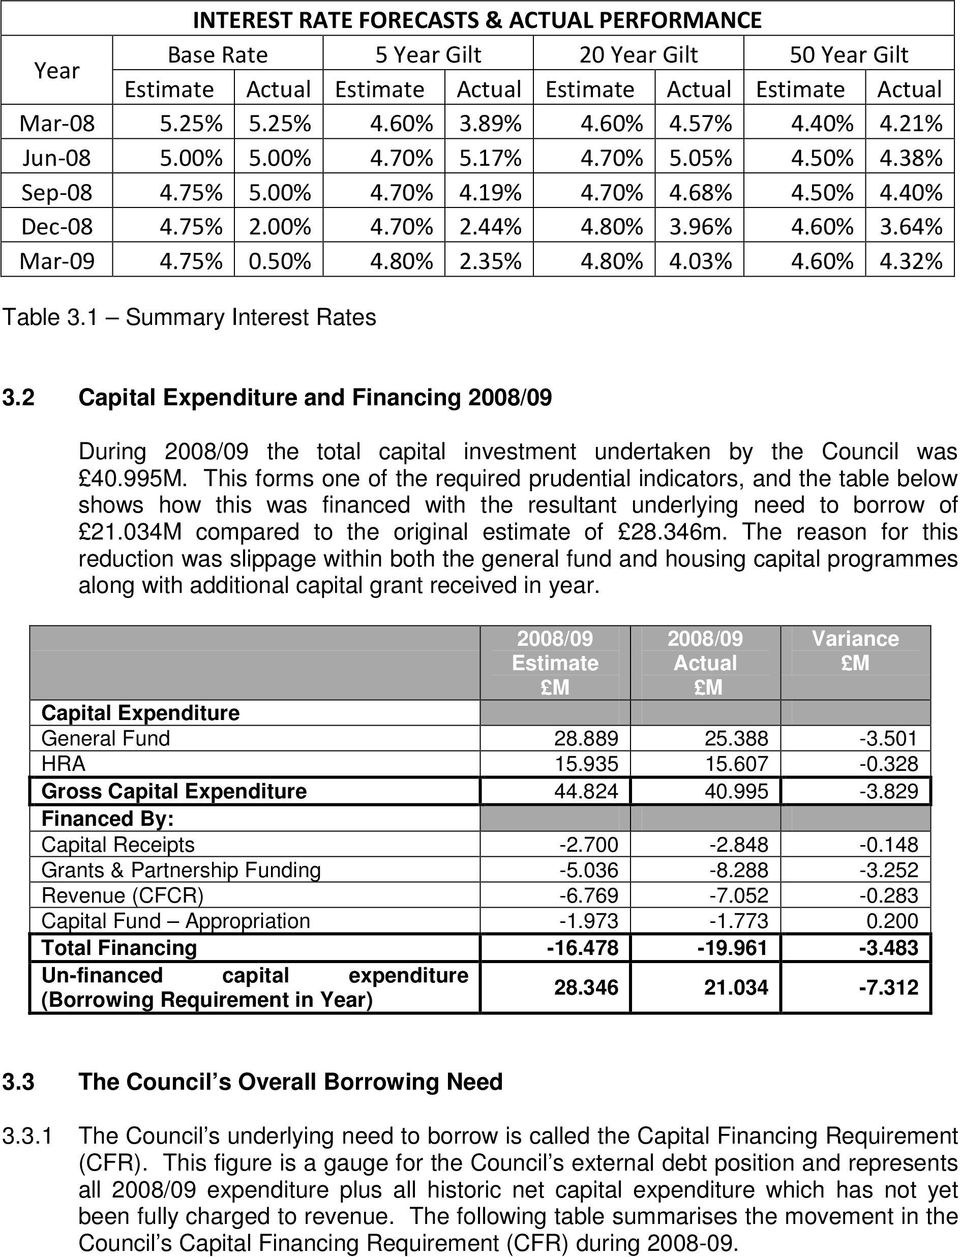 75% 0.50% 4.80% 2.35% 4.80% 4.03% 4.60% 4.32% Table 3.1 Summary Interest Rates 3.2 Capital Expenditure and Financing During the total capital investment undertaken by the Council was 40.995M.